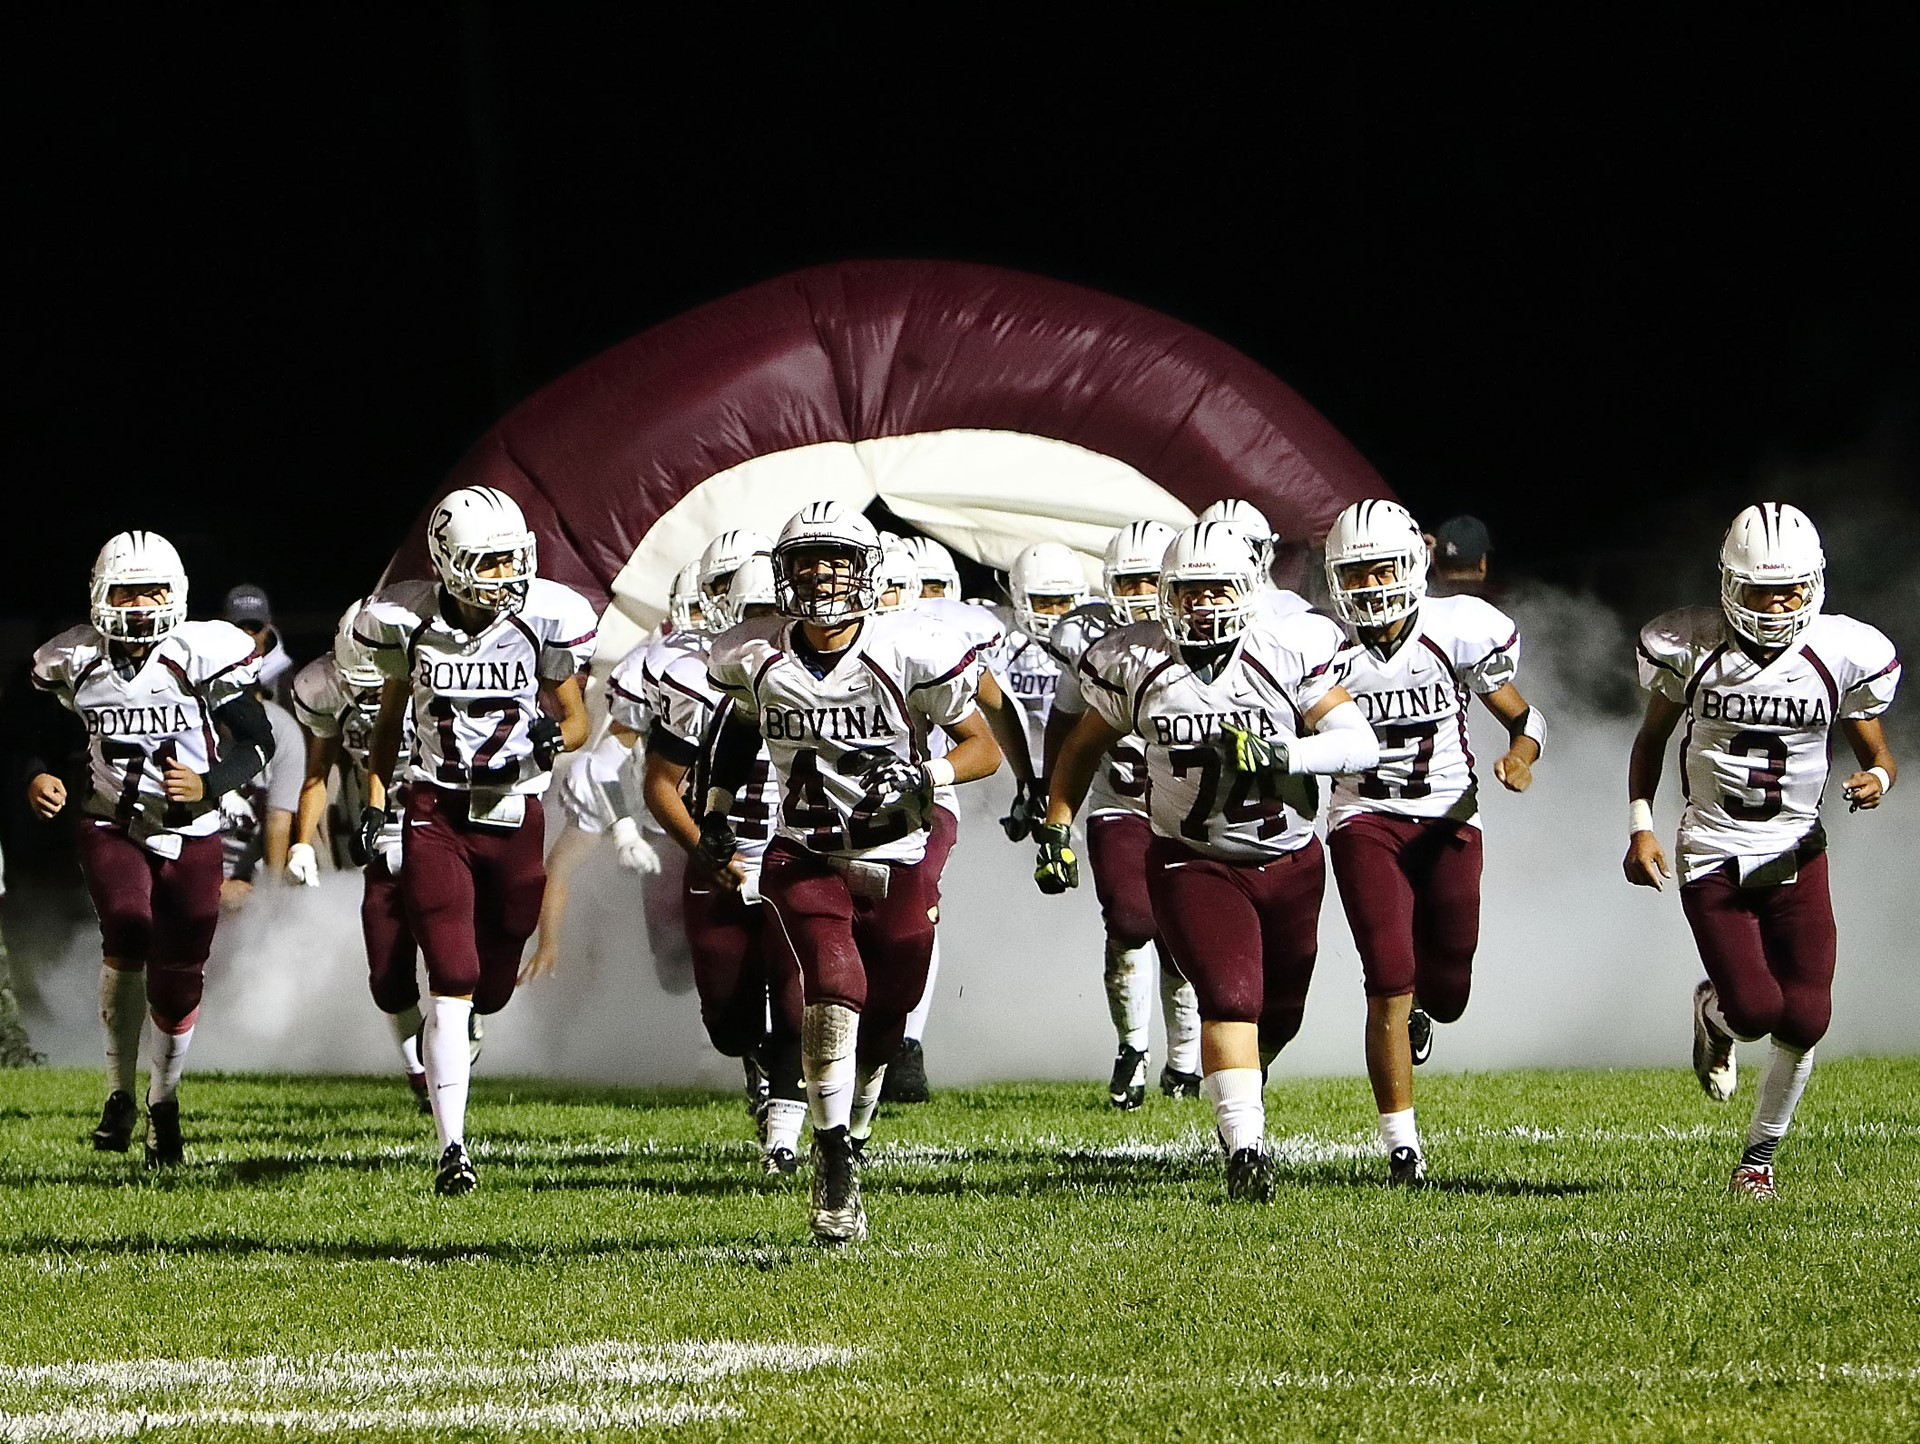 Football team running on to field